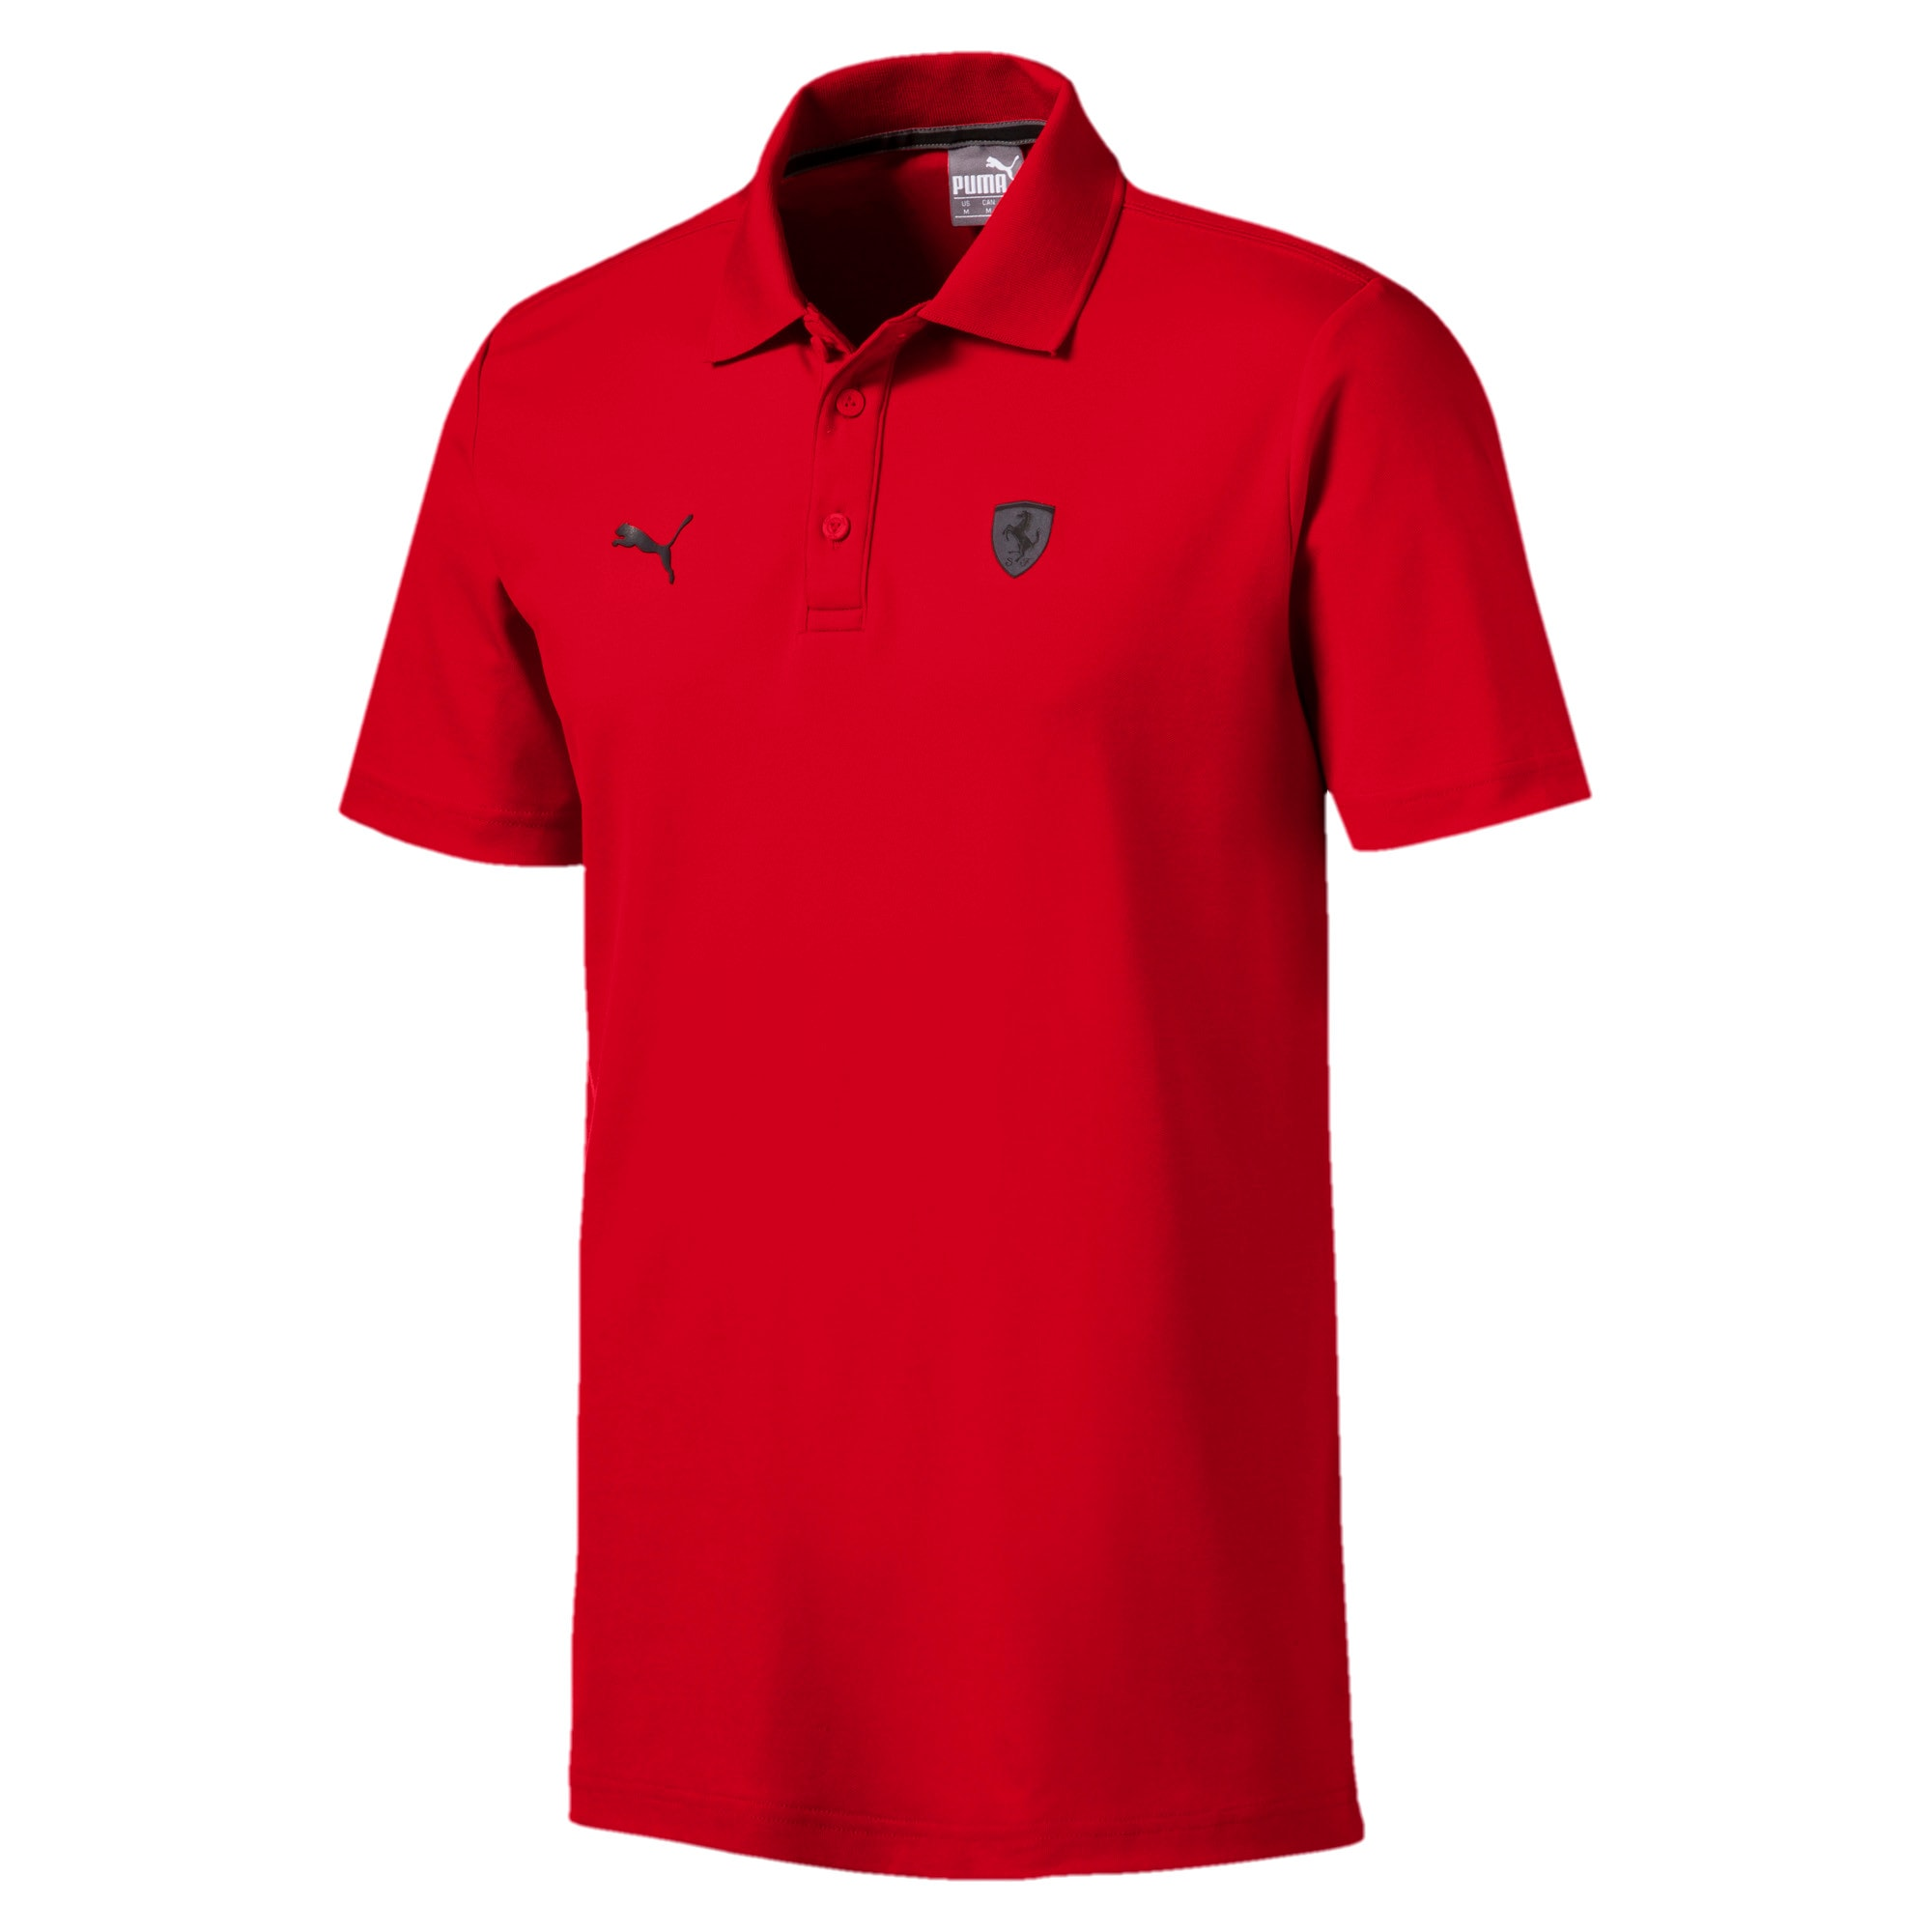 Thumbnail 5 of Ferrari Men's Polo Shirt, Rosso Corsa, medium